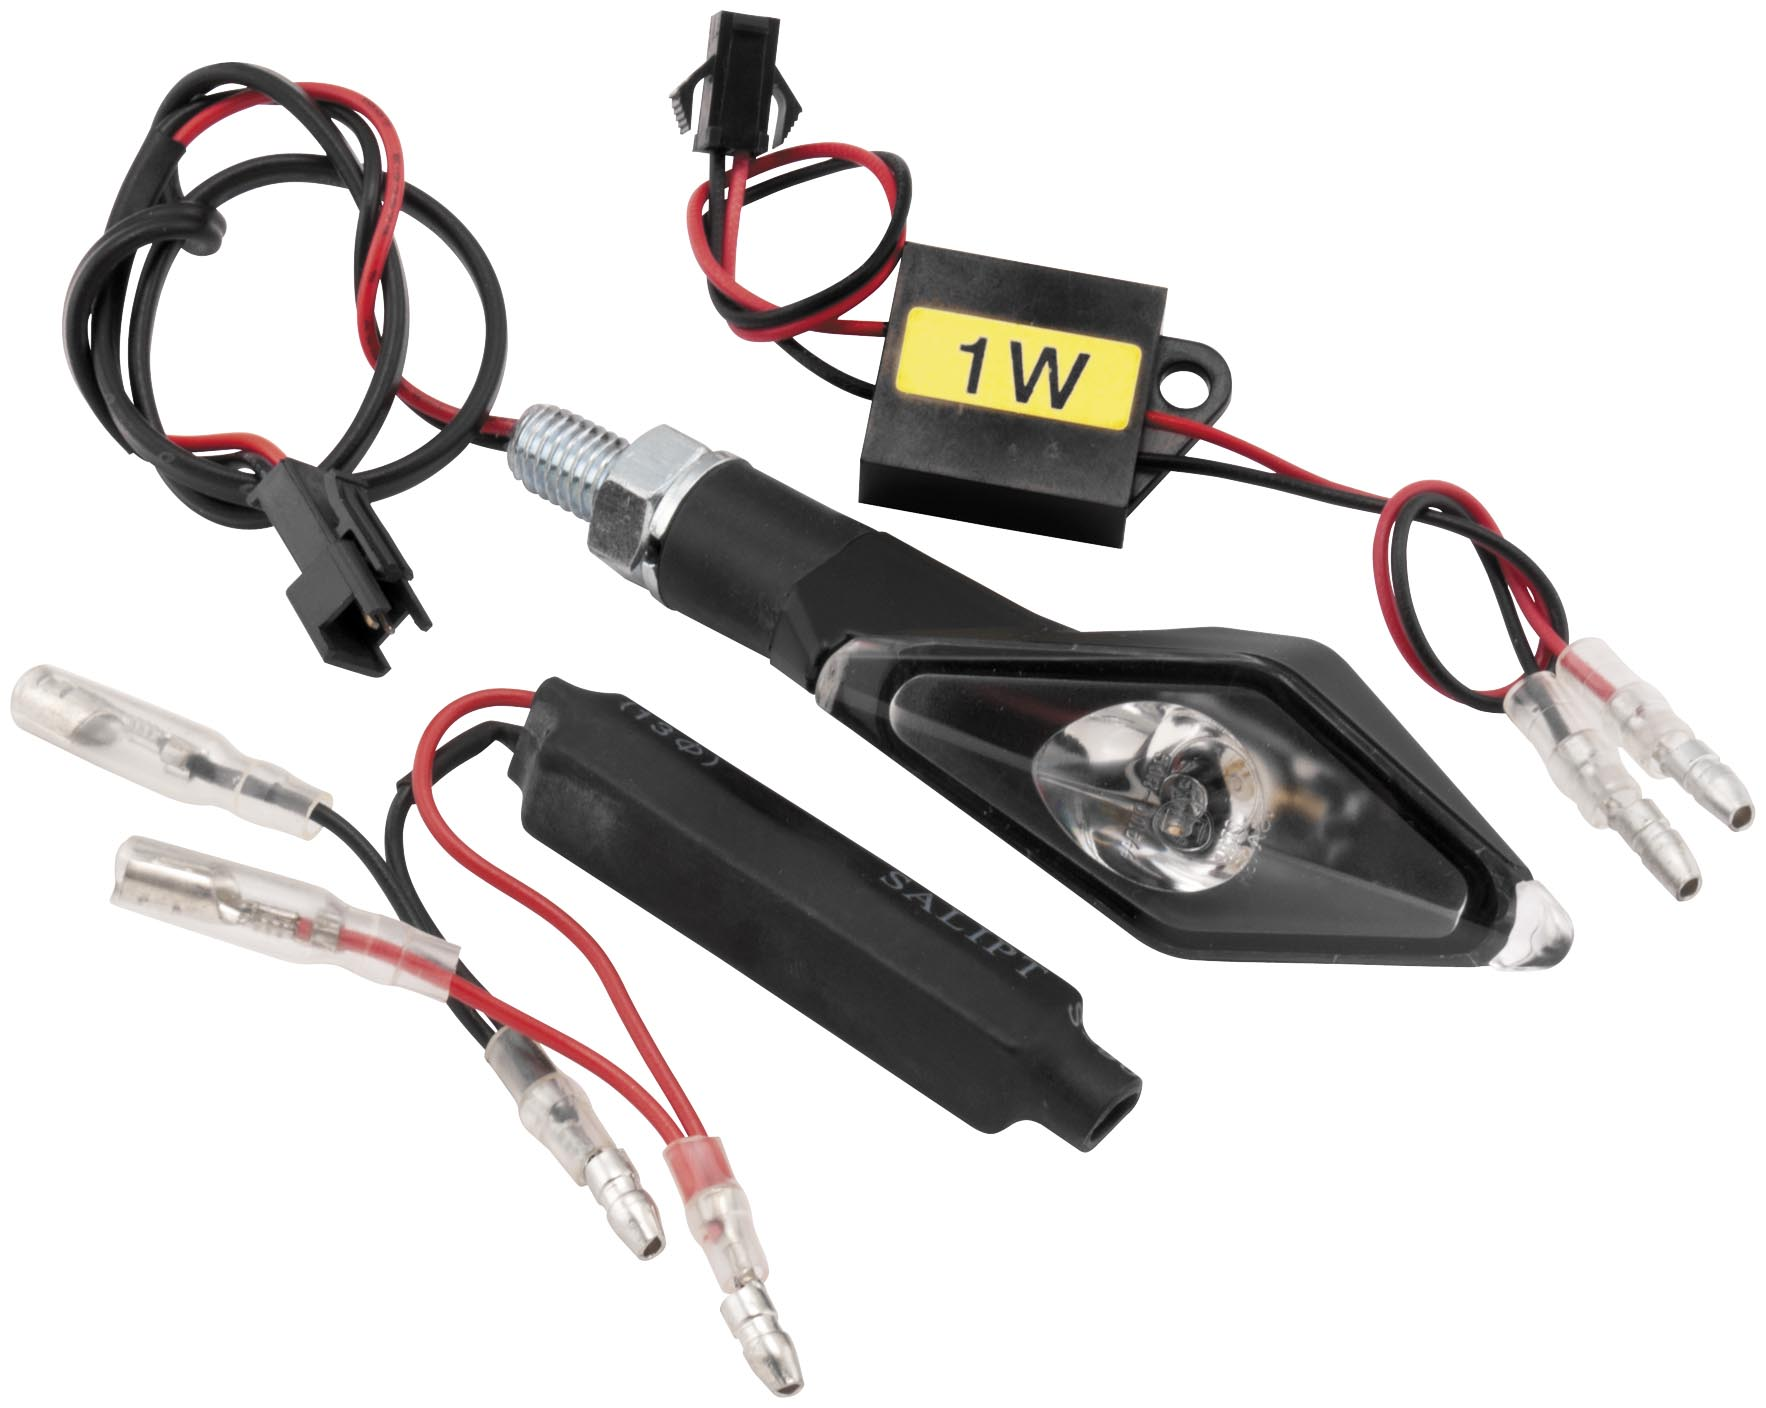 BikeMaster Alien Angle LED Turn Signals with Resistors